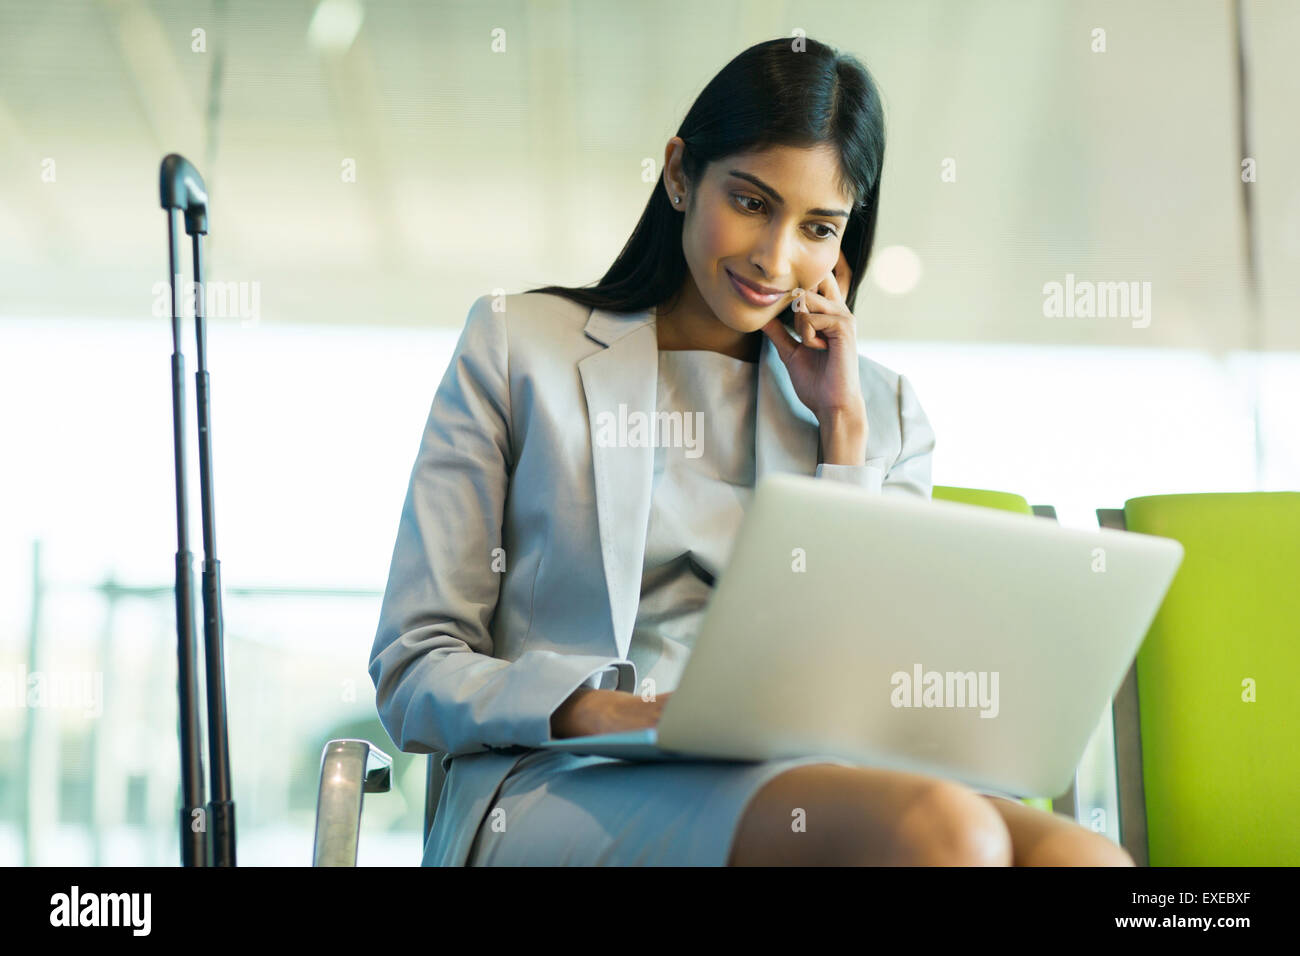 successful Indian businesswoman using laptop computer at airport - Stock Image